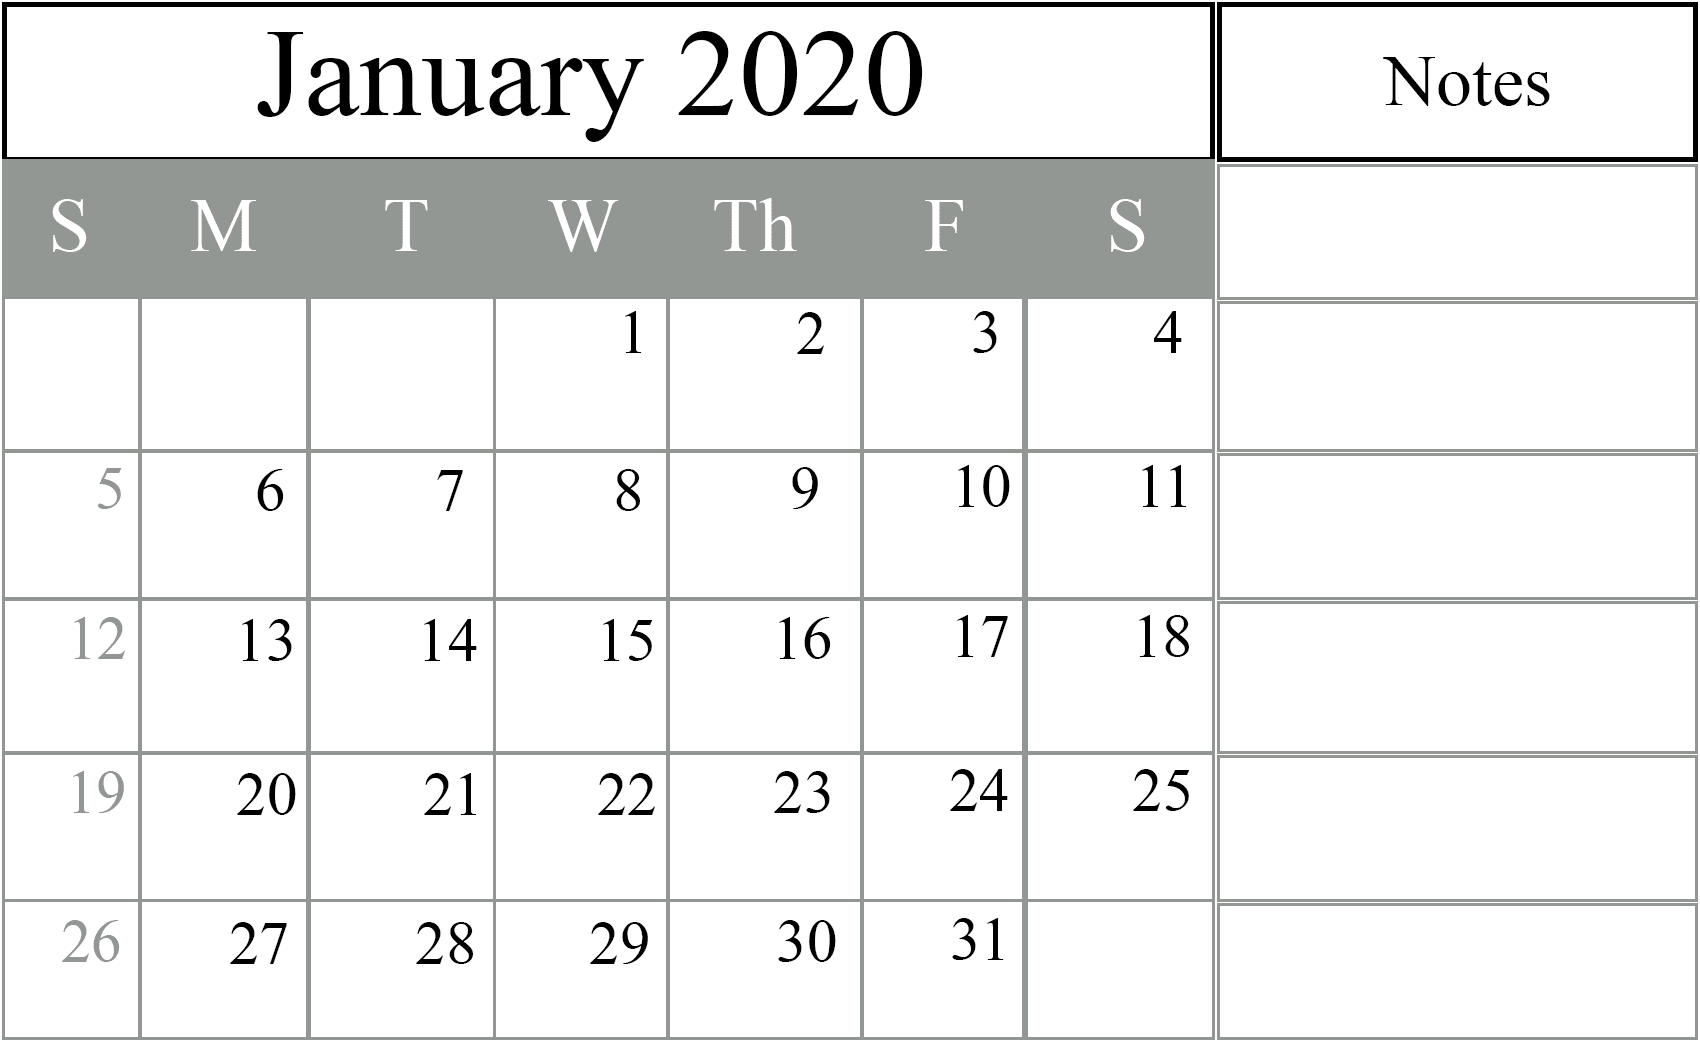 January 2020 Editable Calendar with Notes